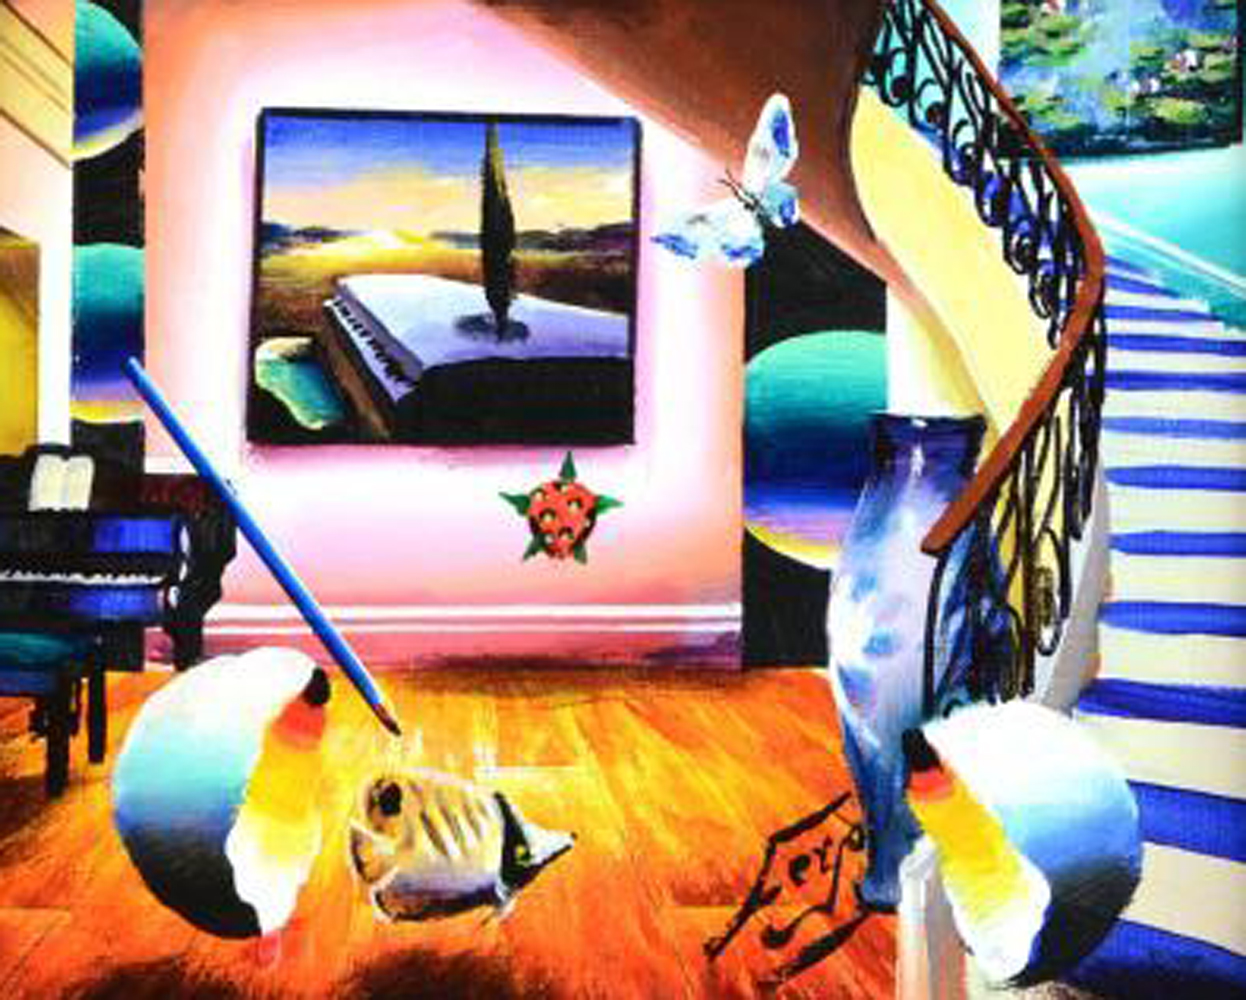 Dali's Fanciful Room 17x15